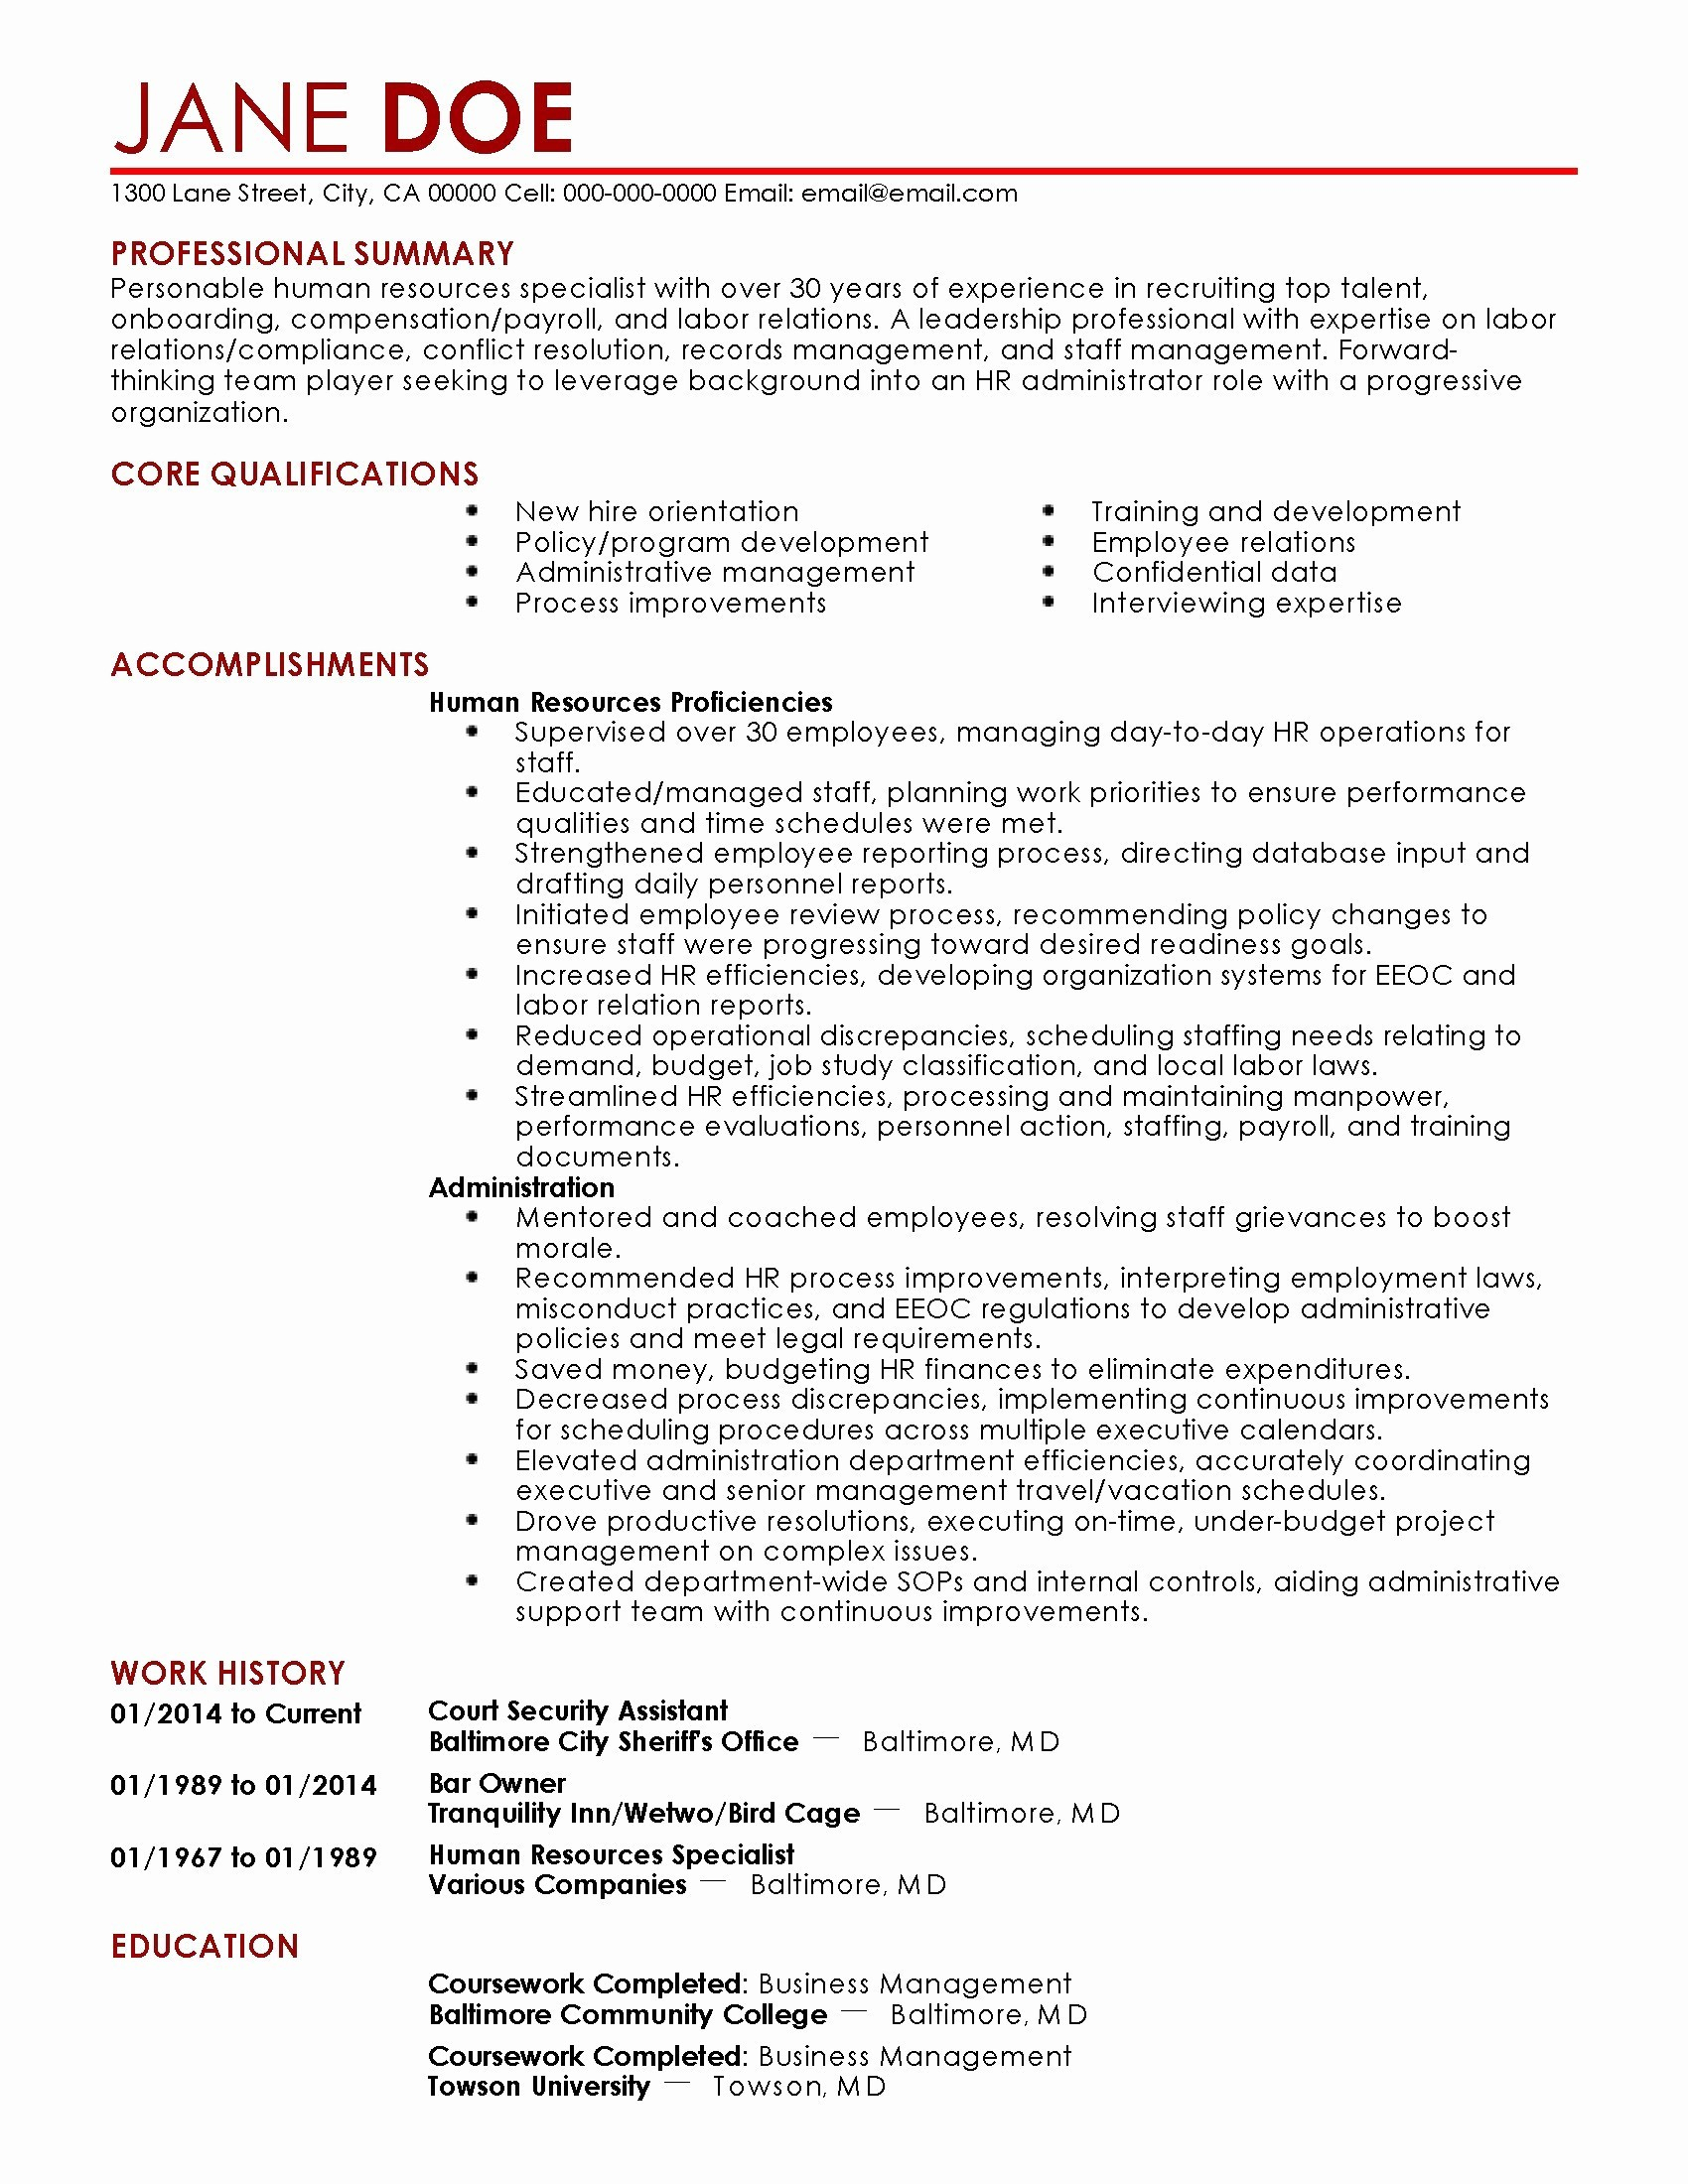 Legal assistant Resume - Legal assistant Resume Inspirational 14 Best Administrative